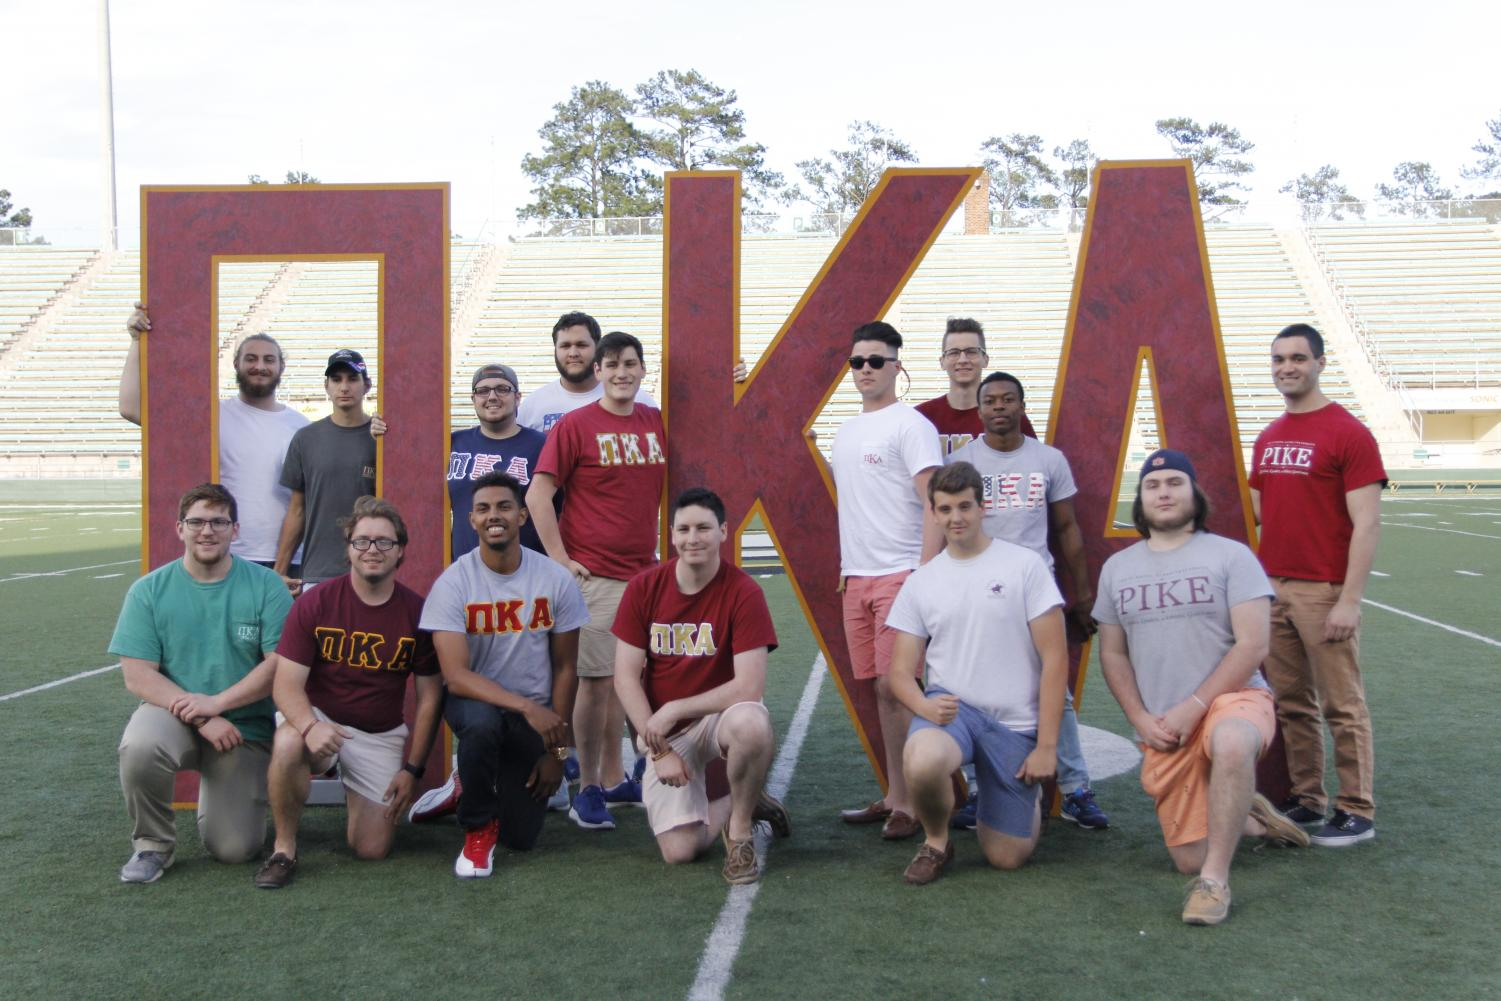 Members of Pi Kappa Alpha rebuilt a broken part of a fence in Dr. Ronald Traylor's yard. Riley Trisler brought the idea to the fraternity.